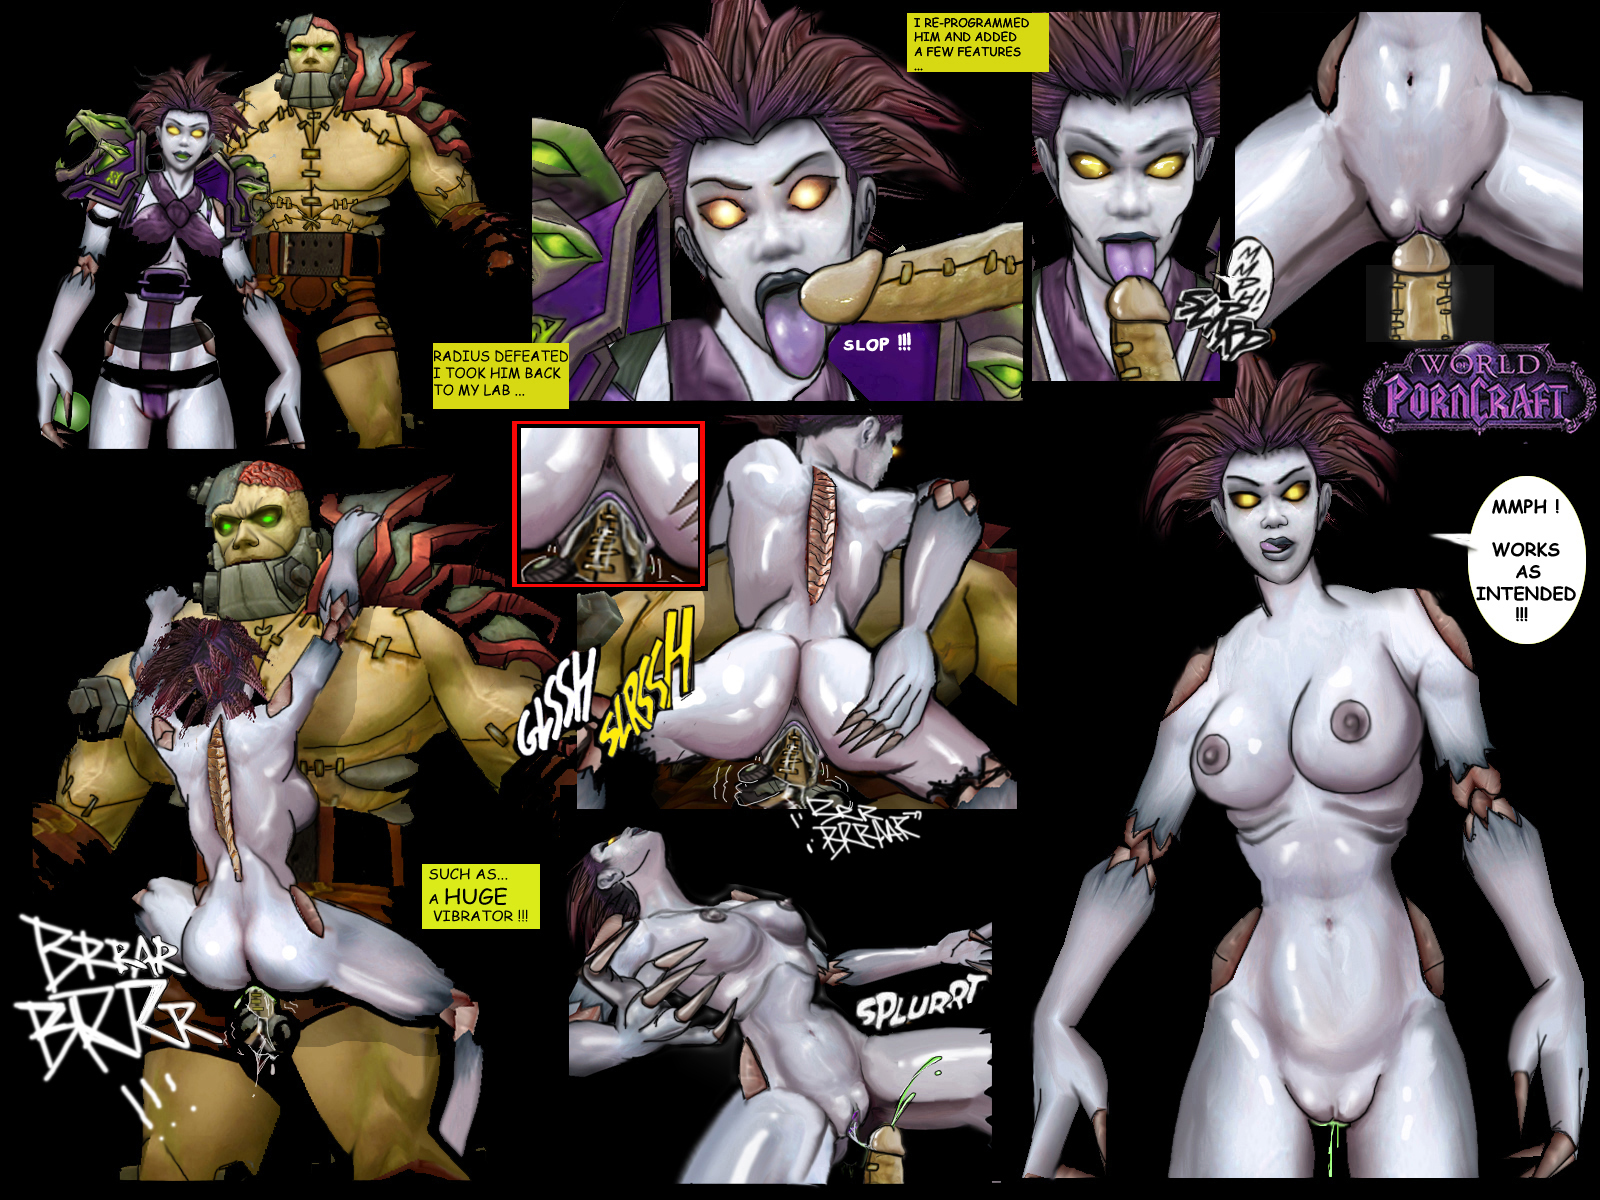 Draenei and undead fatten succubus porn sexy photos